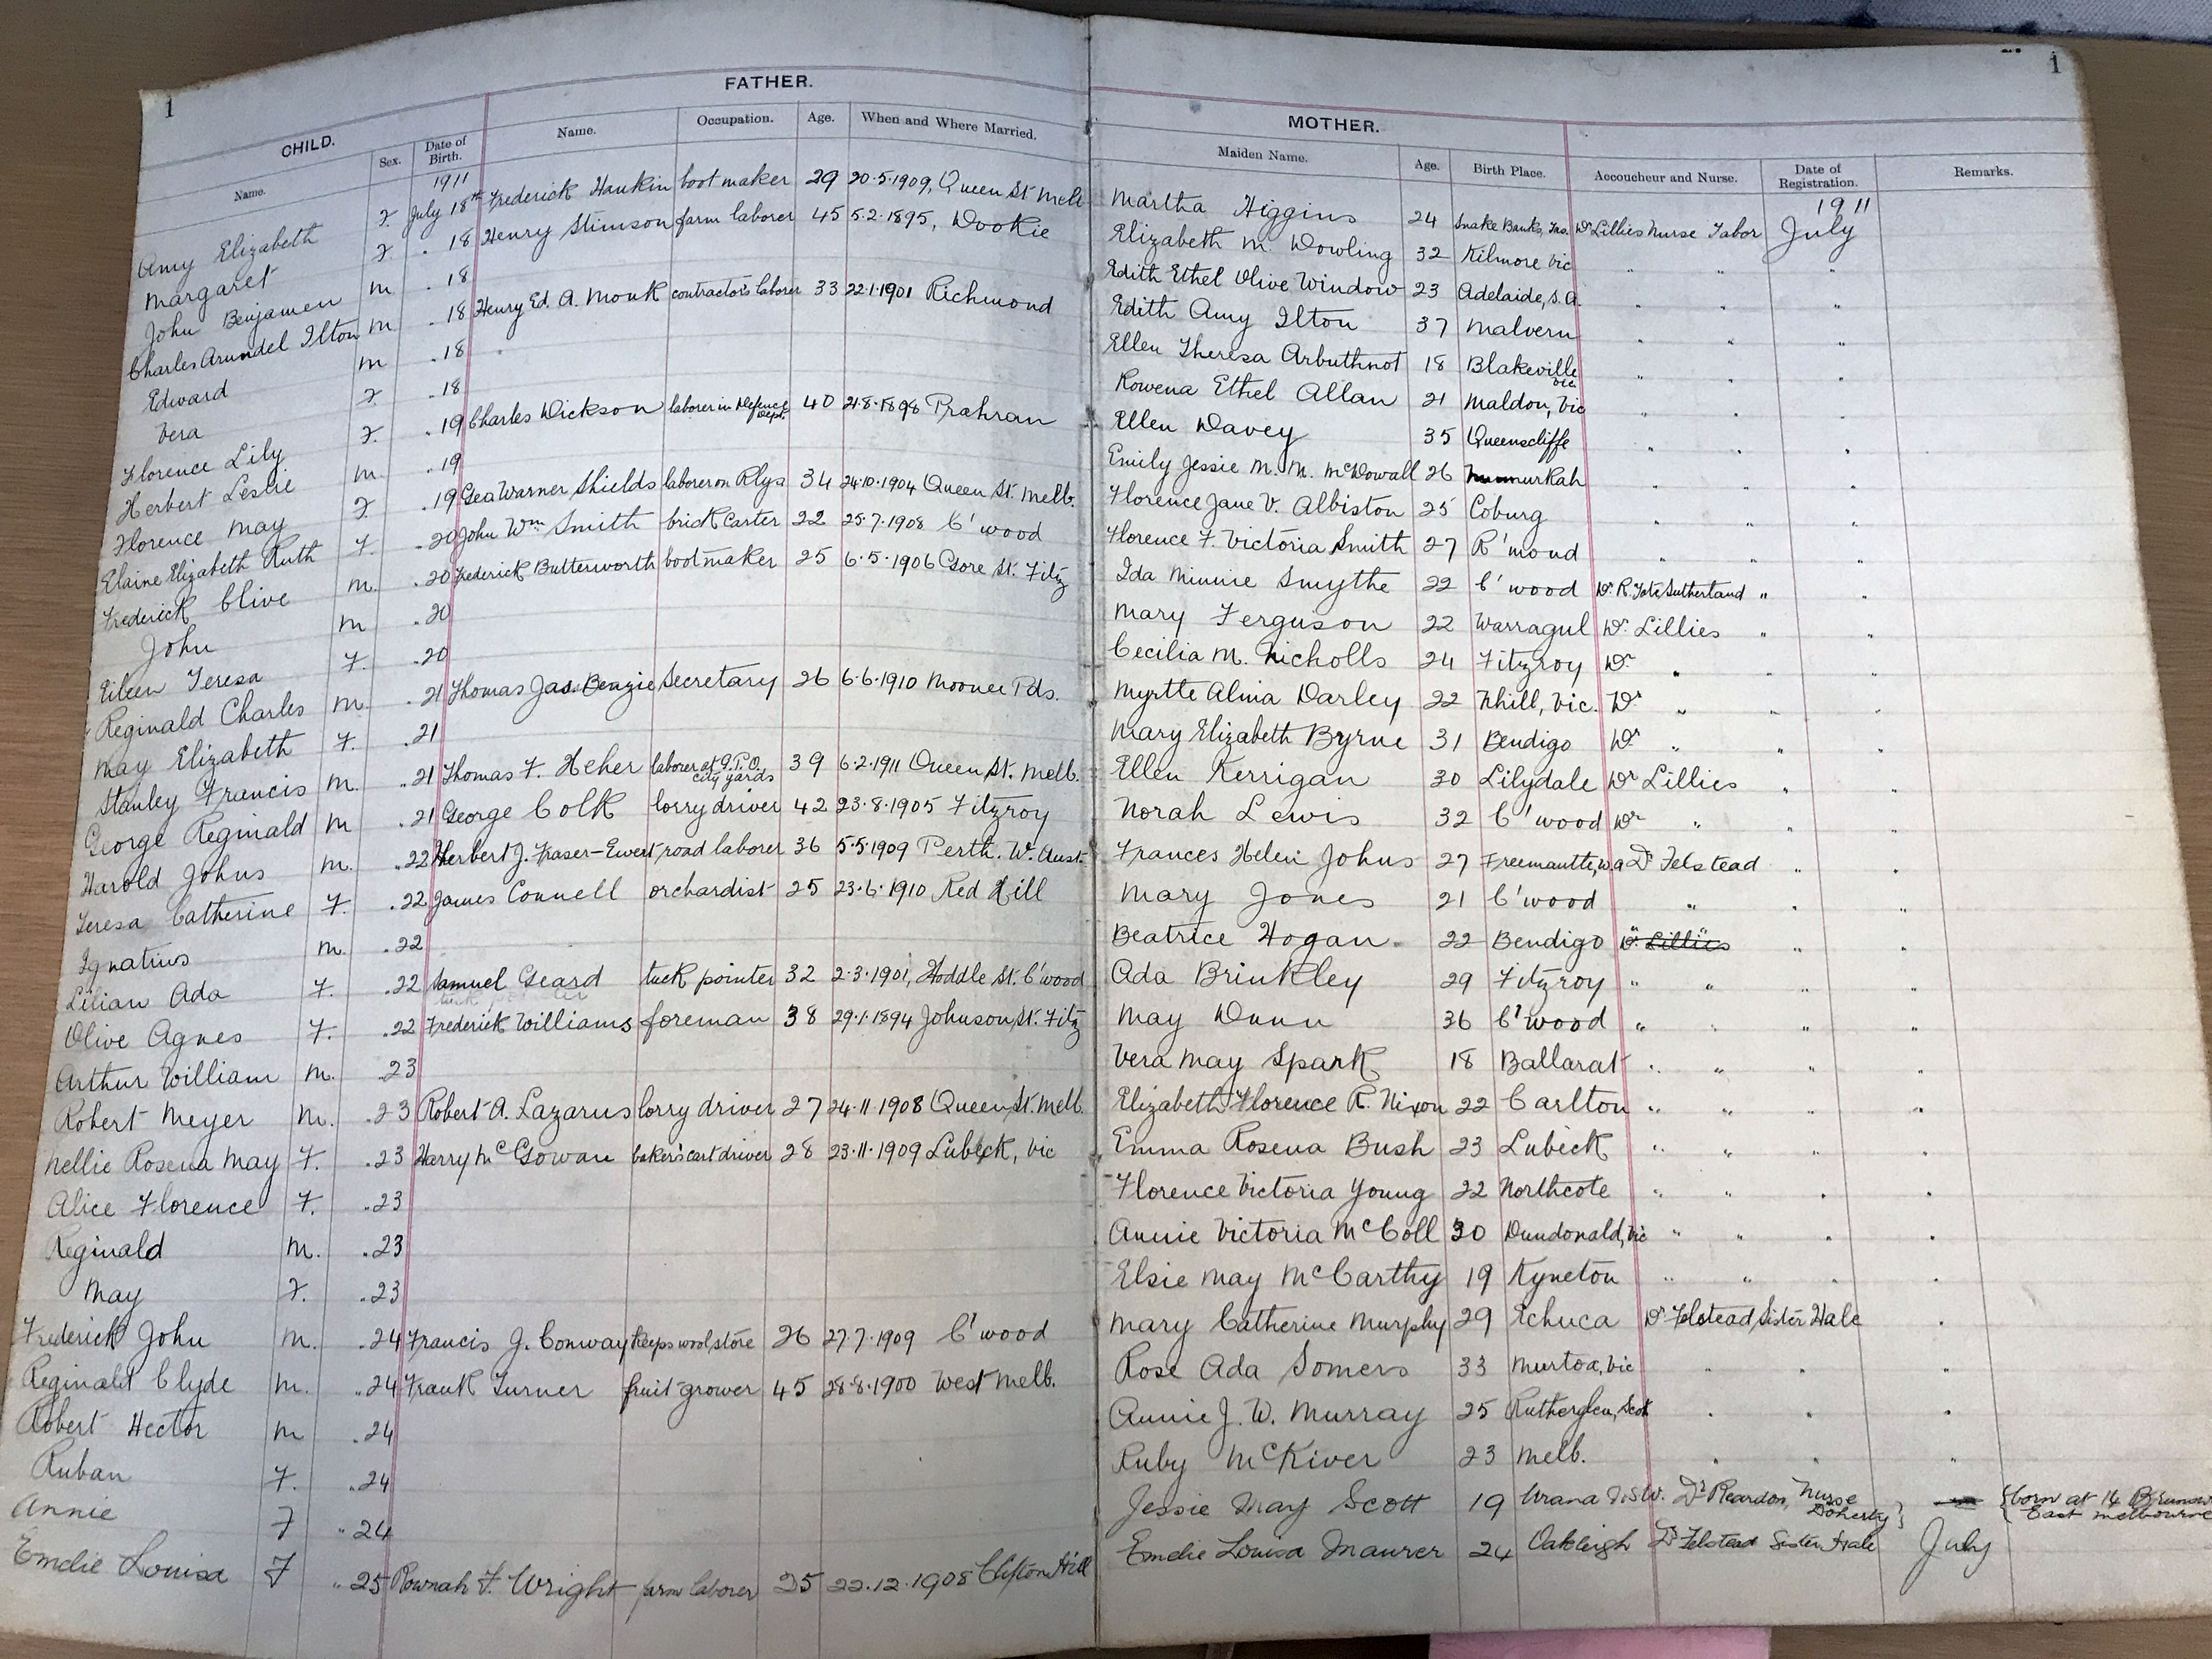 photo of the birth book